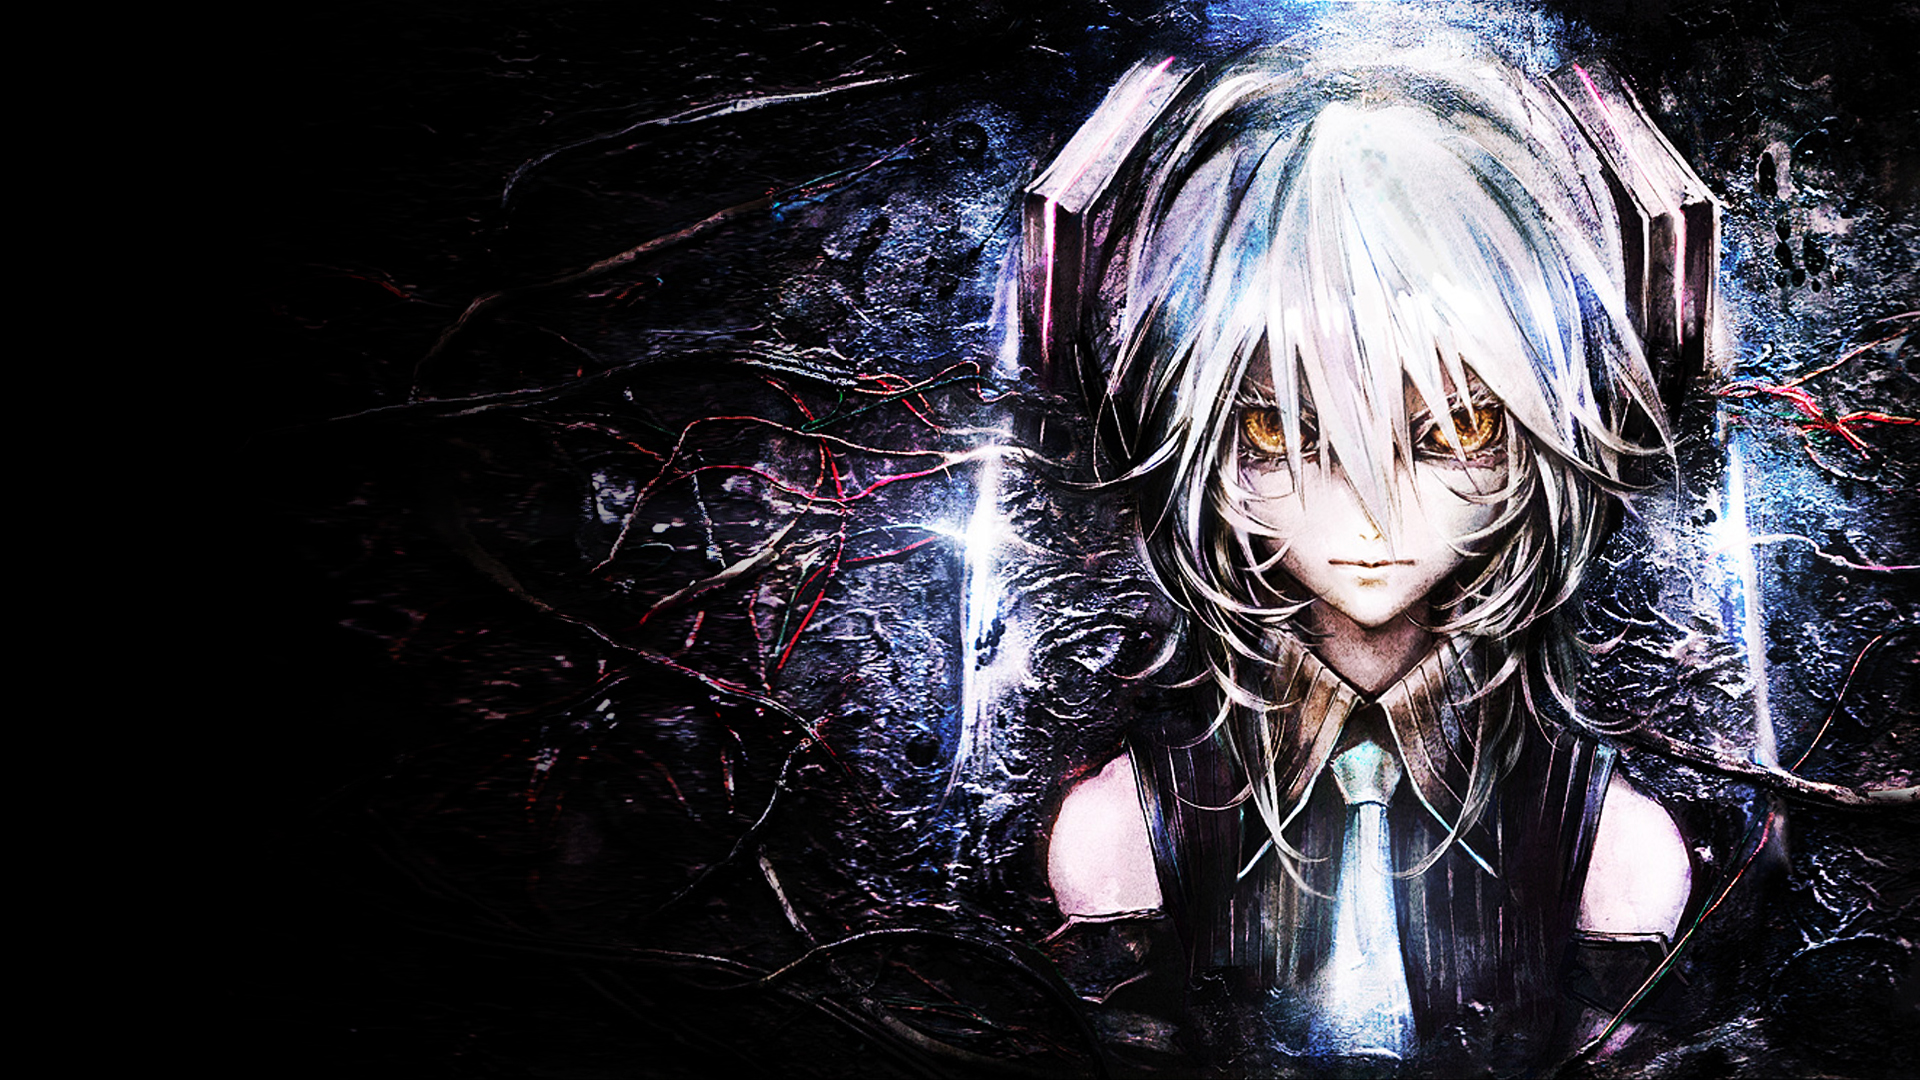 25 Cool and Amazing Anime Wallpapers takedesigns 1920x1080